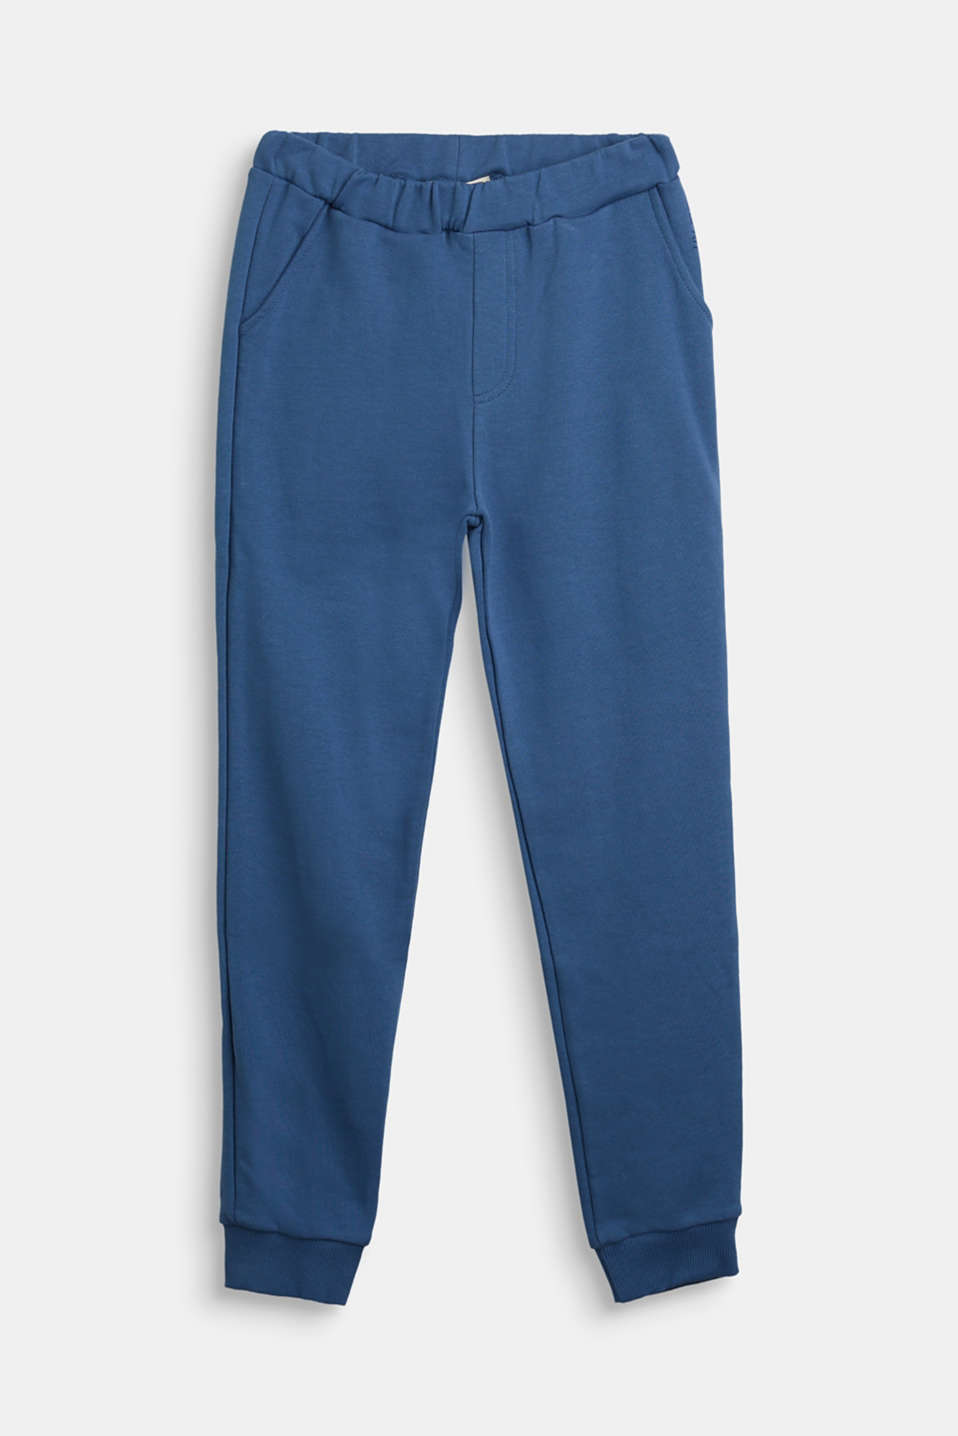 Esprit - Tracksuit bottoms in 100% cotton